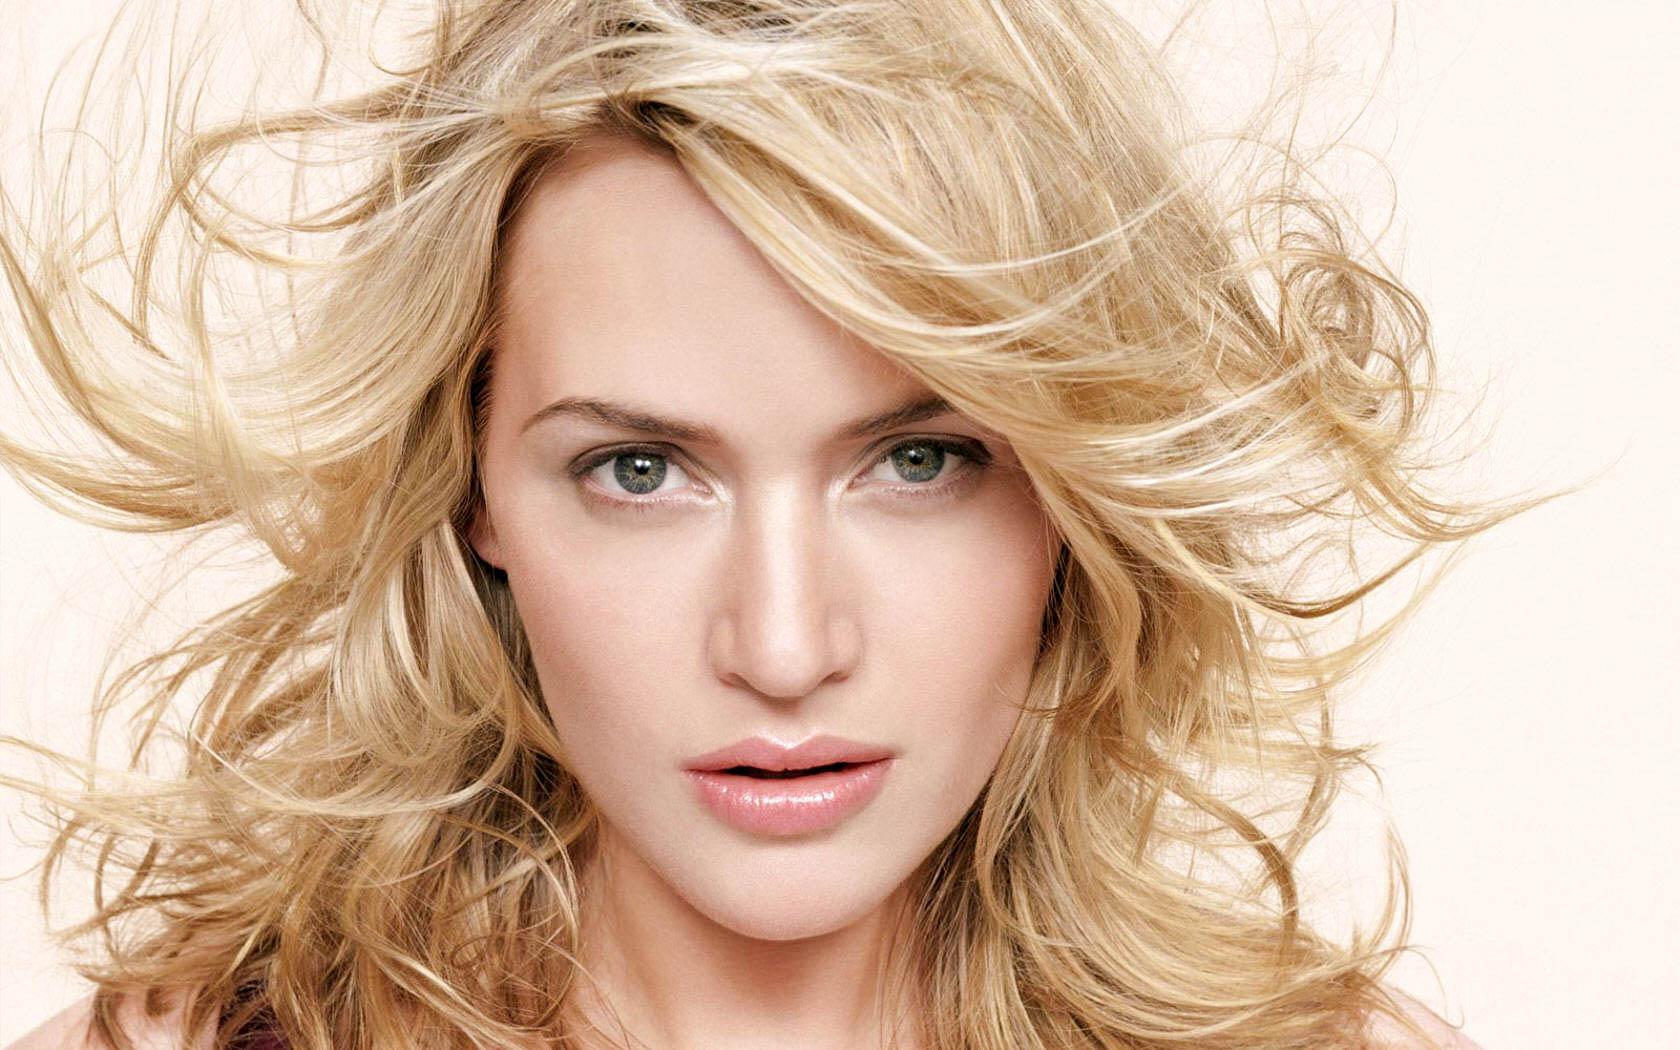 1680x1050 - Kate Winslet Wallpapers 2